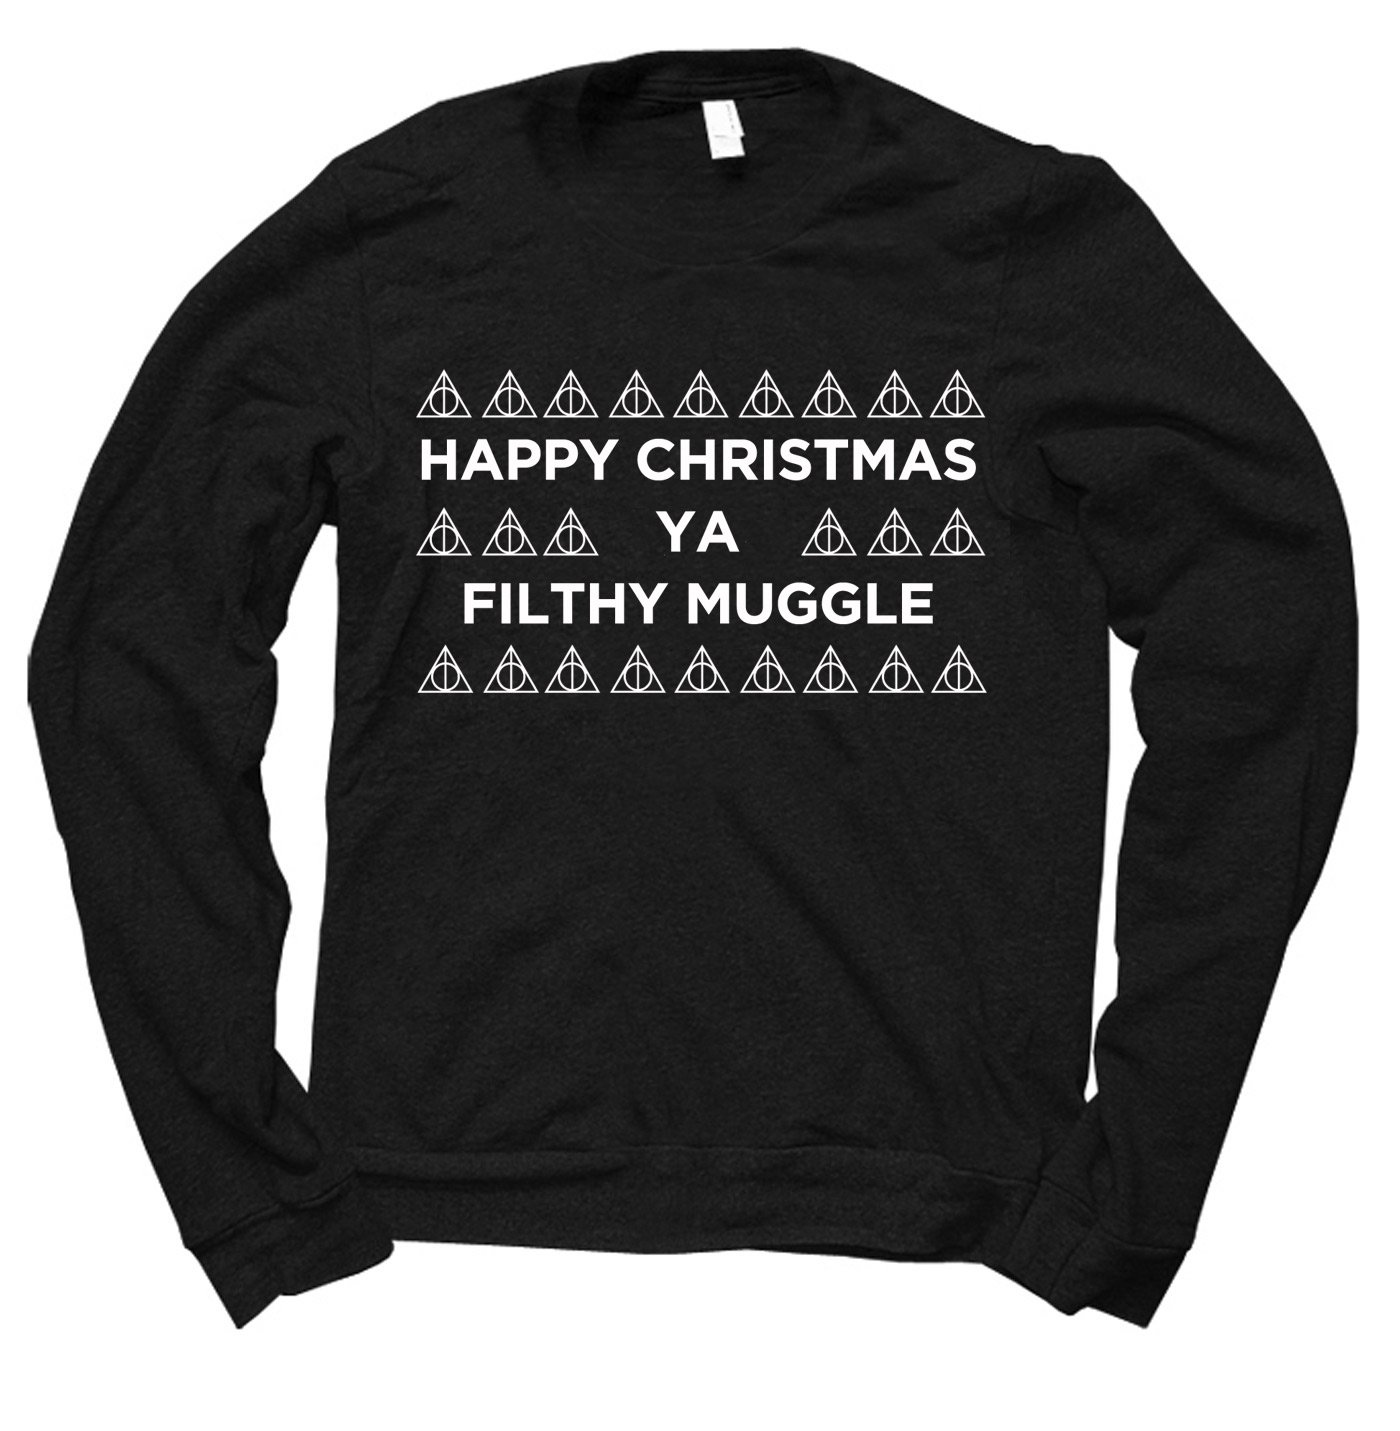 happy christmas ya filthy muggle christmas jumper by clique wear